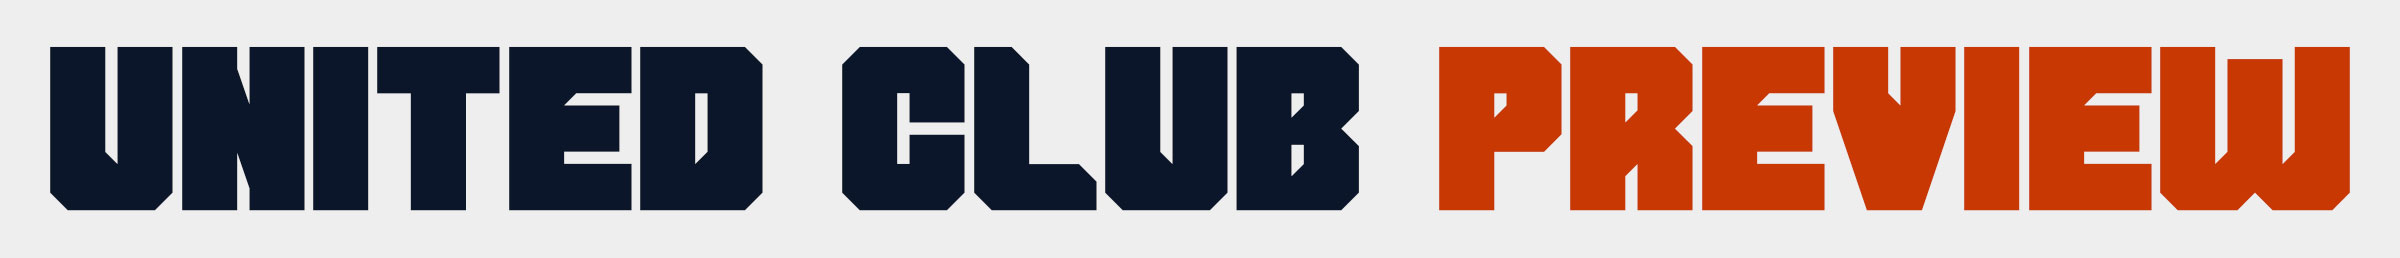 United Club Preview | Chicago Bears Official Website